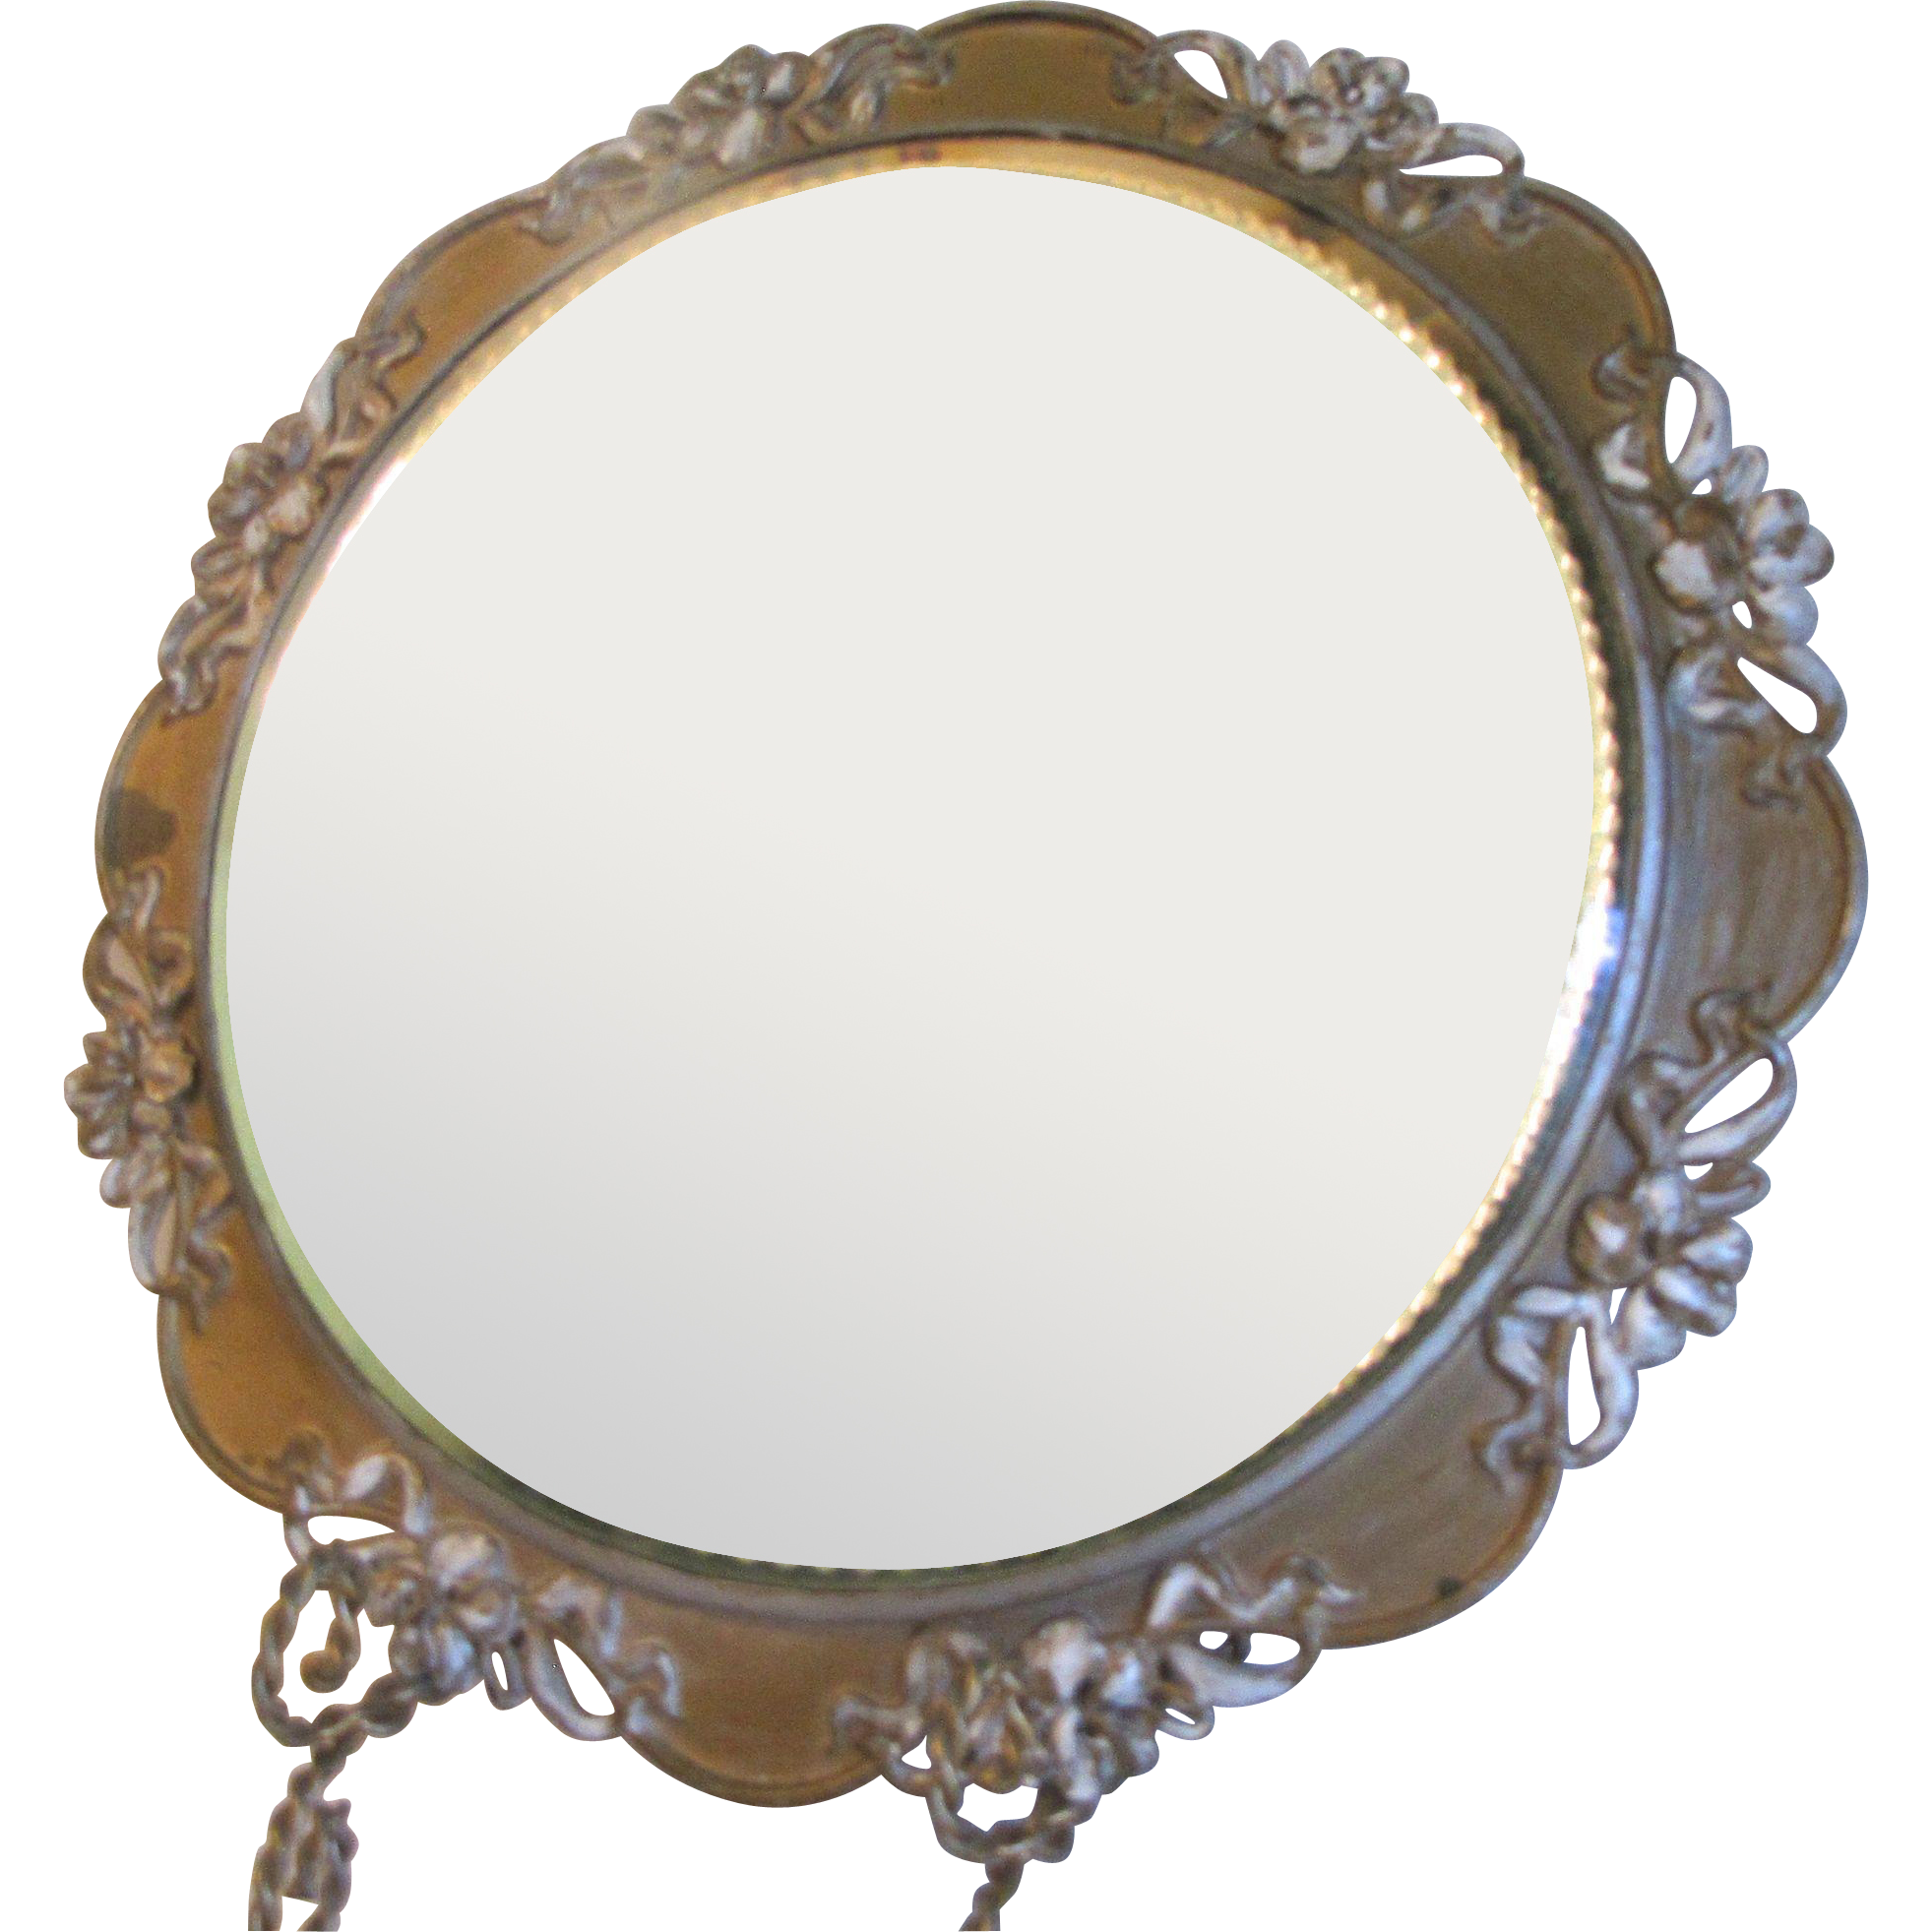 Art Nouveau Quadruple Plate Platform Mirror